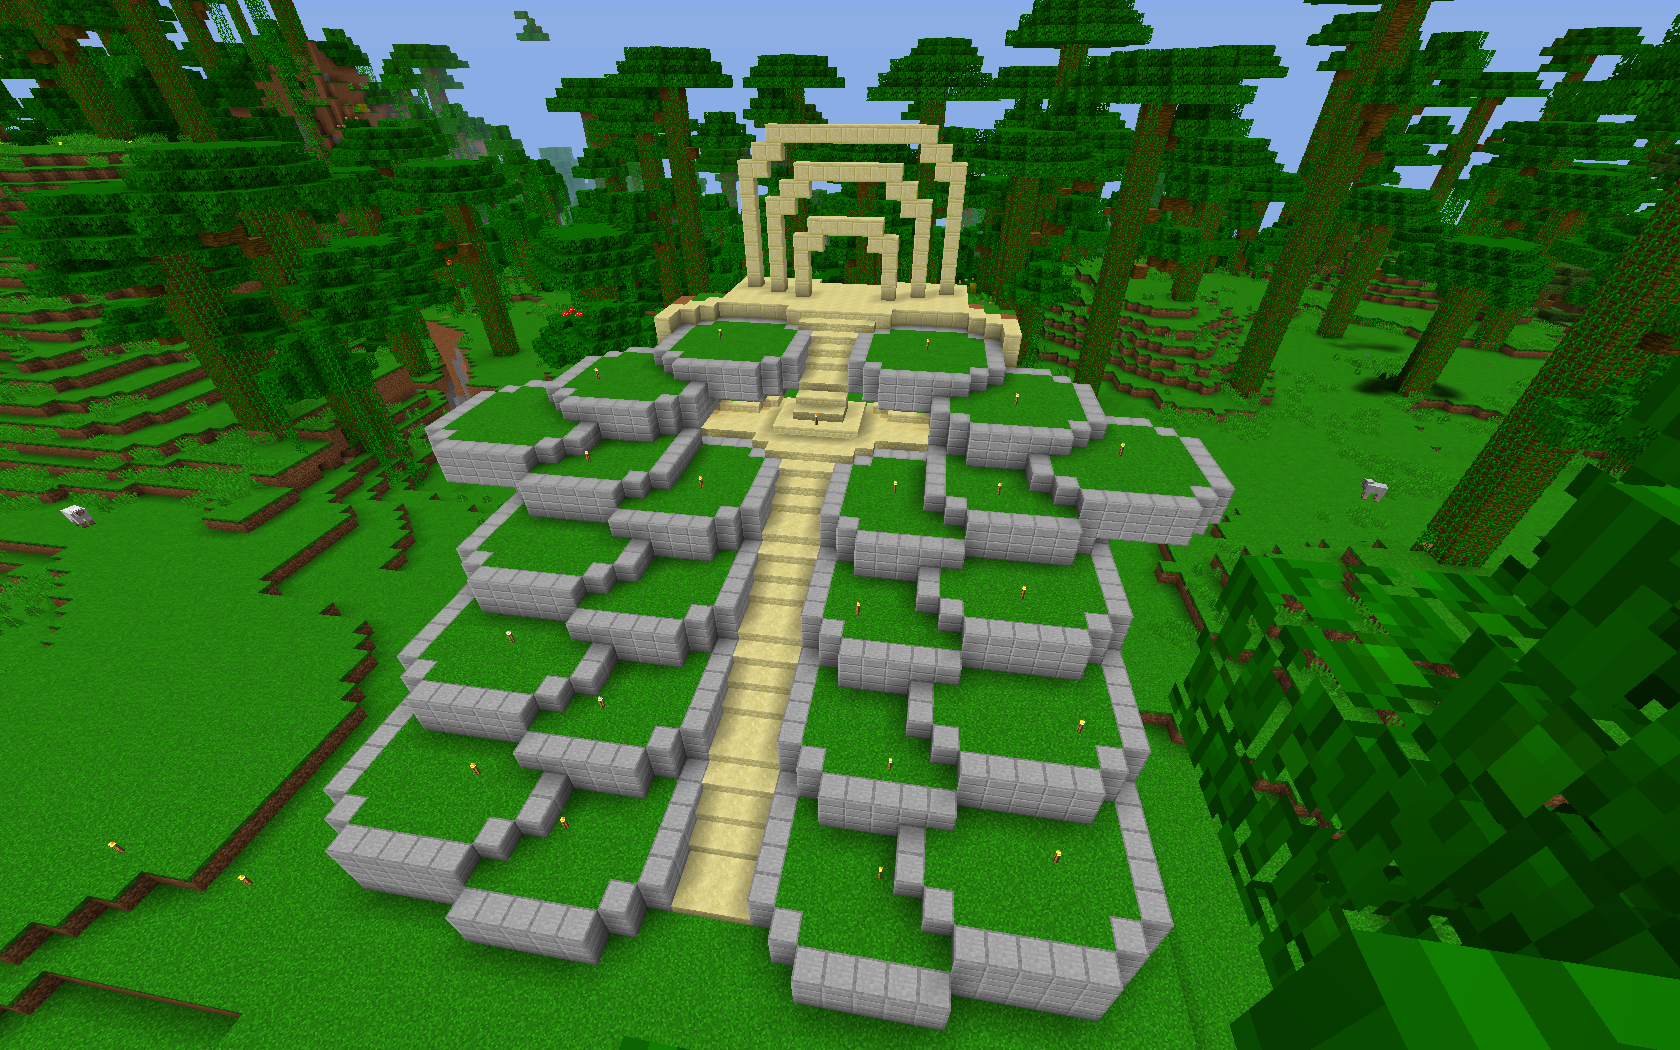 Need help continuing this build   Bâtiments minecraft, Créations minecraft et Idées minecraft